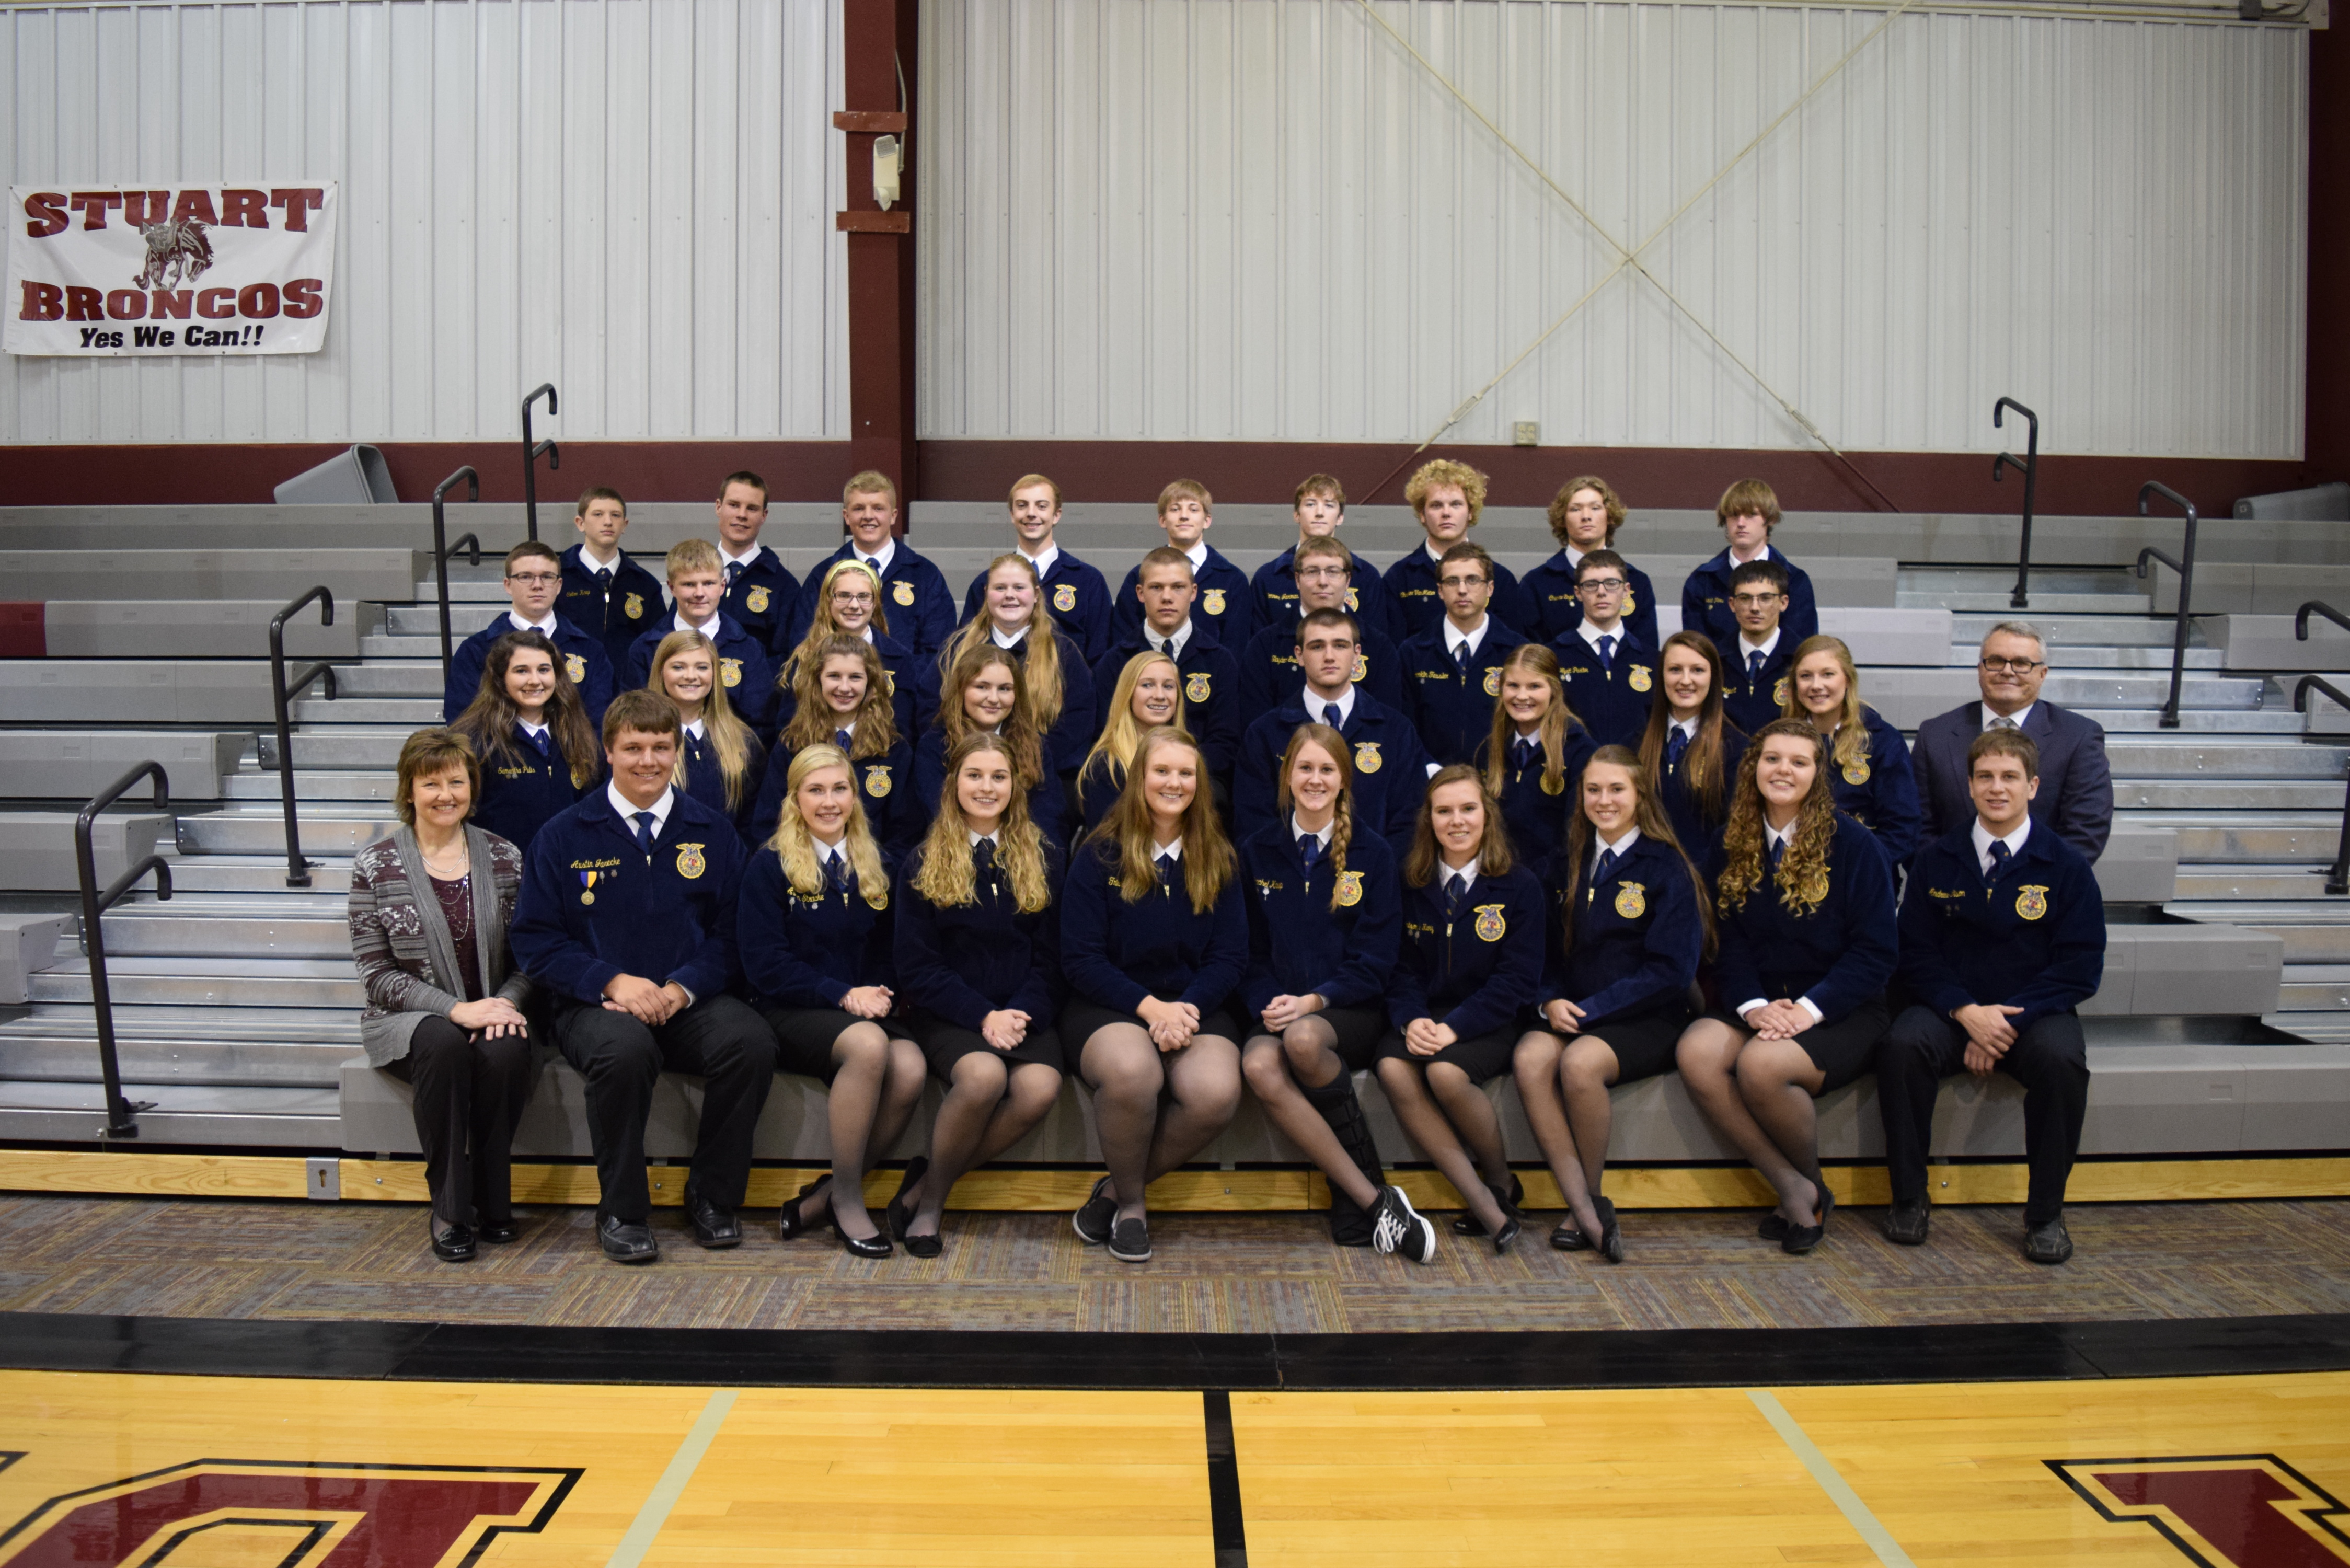 an introduction to the nebraska ffa Classic ffa day wednesday, february nebraska ffa chapters the classic sponsors are investing in the 1st - $1,500 2nd - $1,000 3rd - $750 introduction of the.